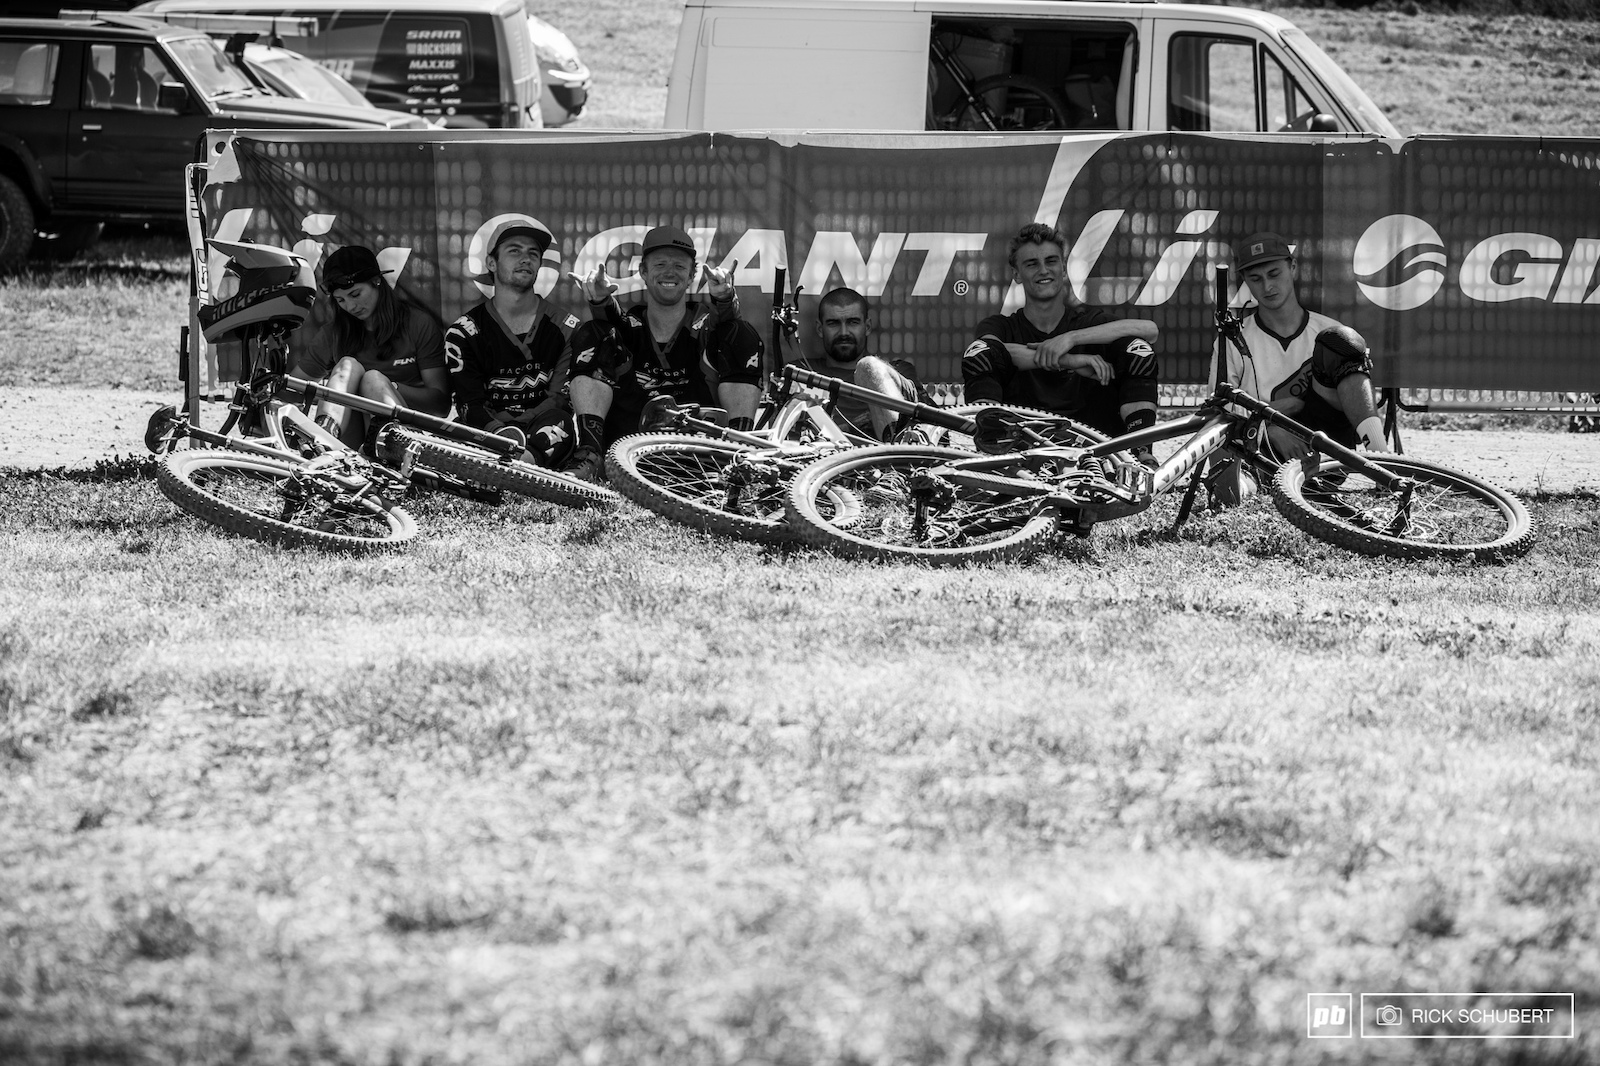 Due to high temperatures and the long demanding track the riders were suffering a lot this weekend